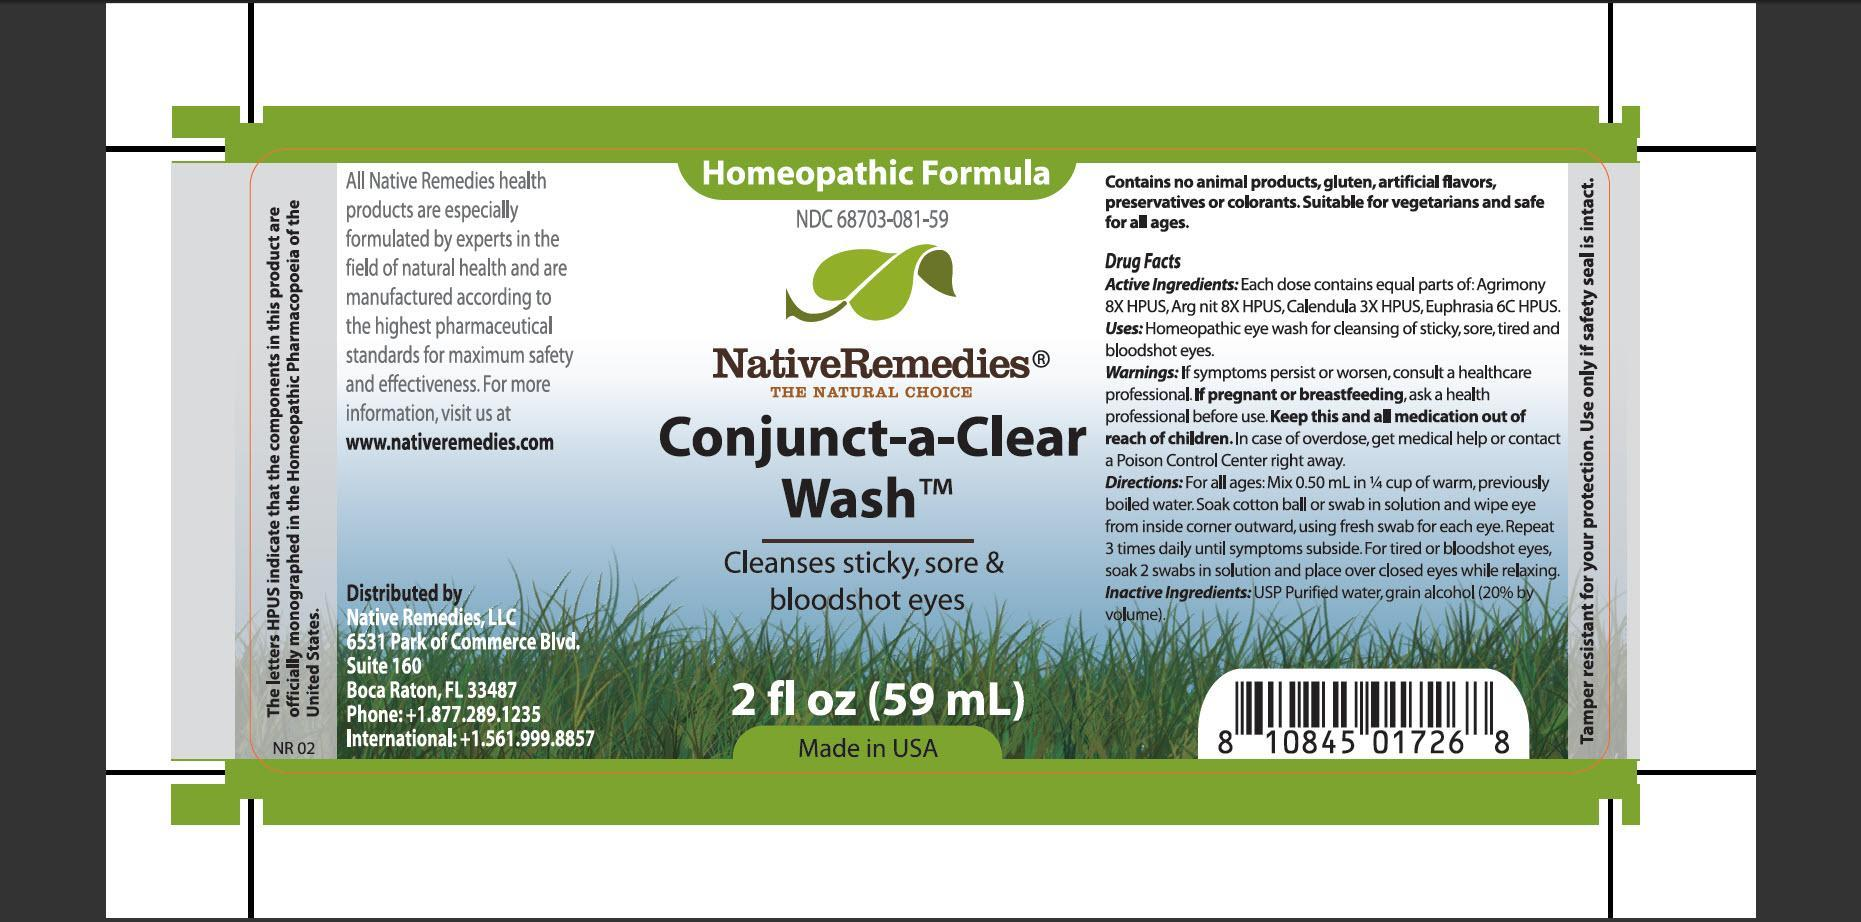 Conjunct-a-clear Wash (Agrimony, Arg Nit, Calendula, Euphrasia) Tincture [Native Remedies, Llc]